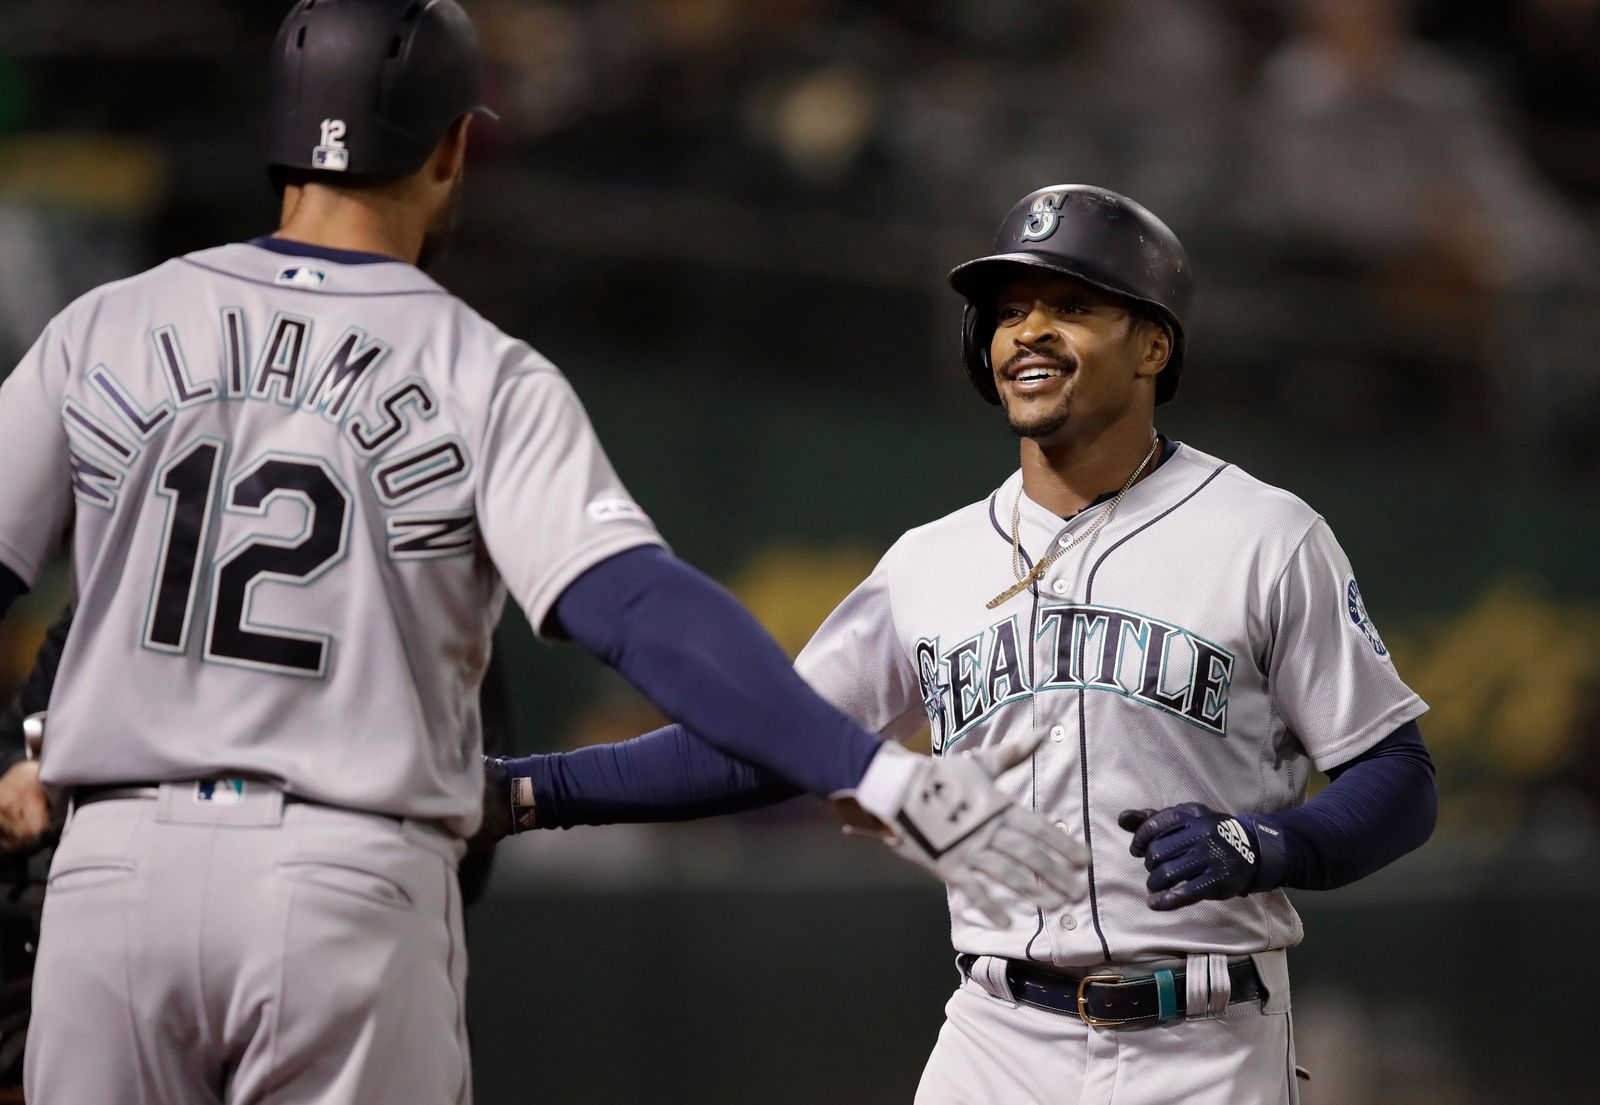 Seattle Mariners' Mallex Smith, right, celebrates with Mac Williamson after hitting a two-run home run off Oakland Athletics' Aaron Brooks during the eighth inning of a baseball game Friday, June 14, 2019, in Oakland, Calif. (AP Photo/Ben Margot)